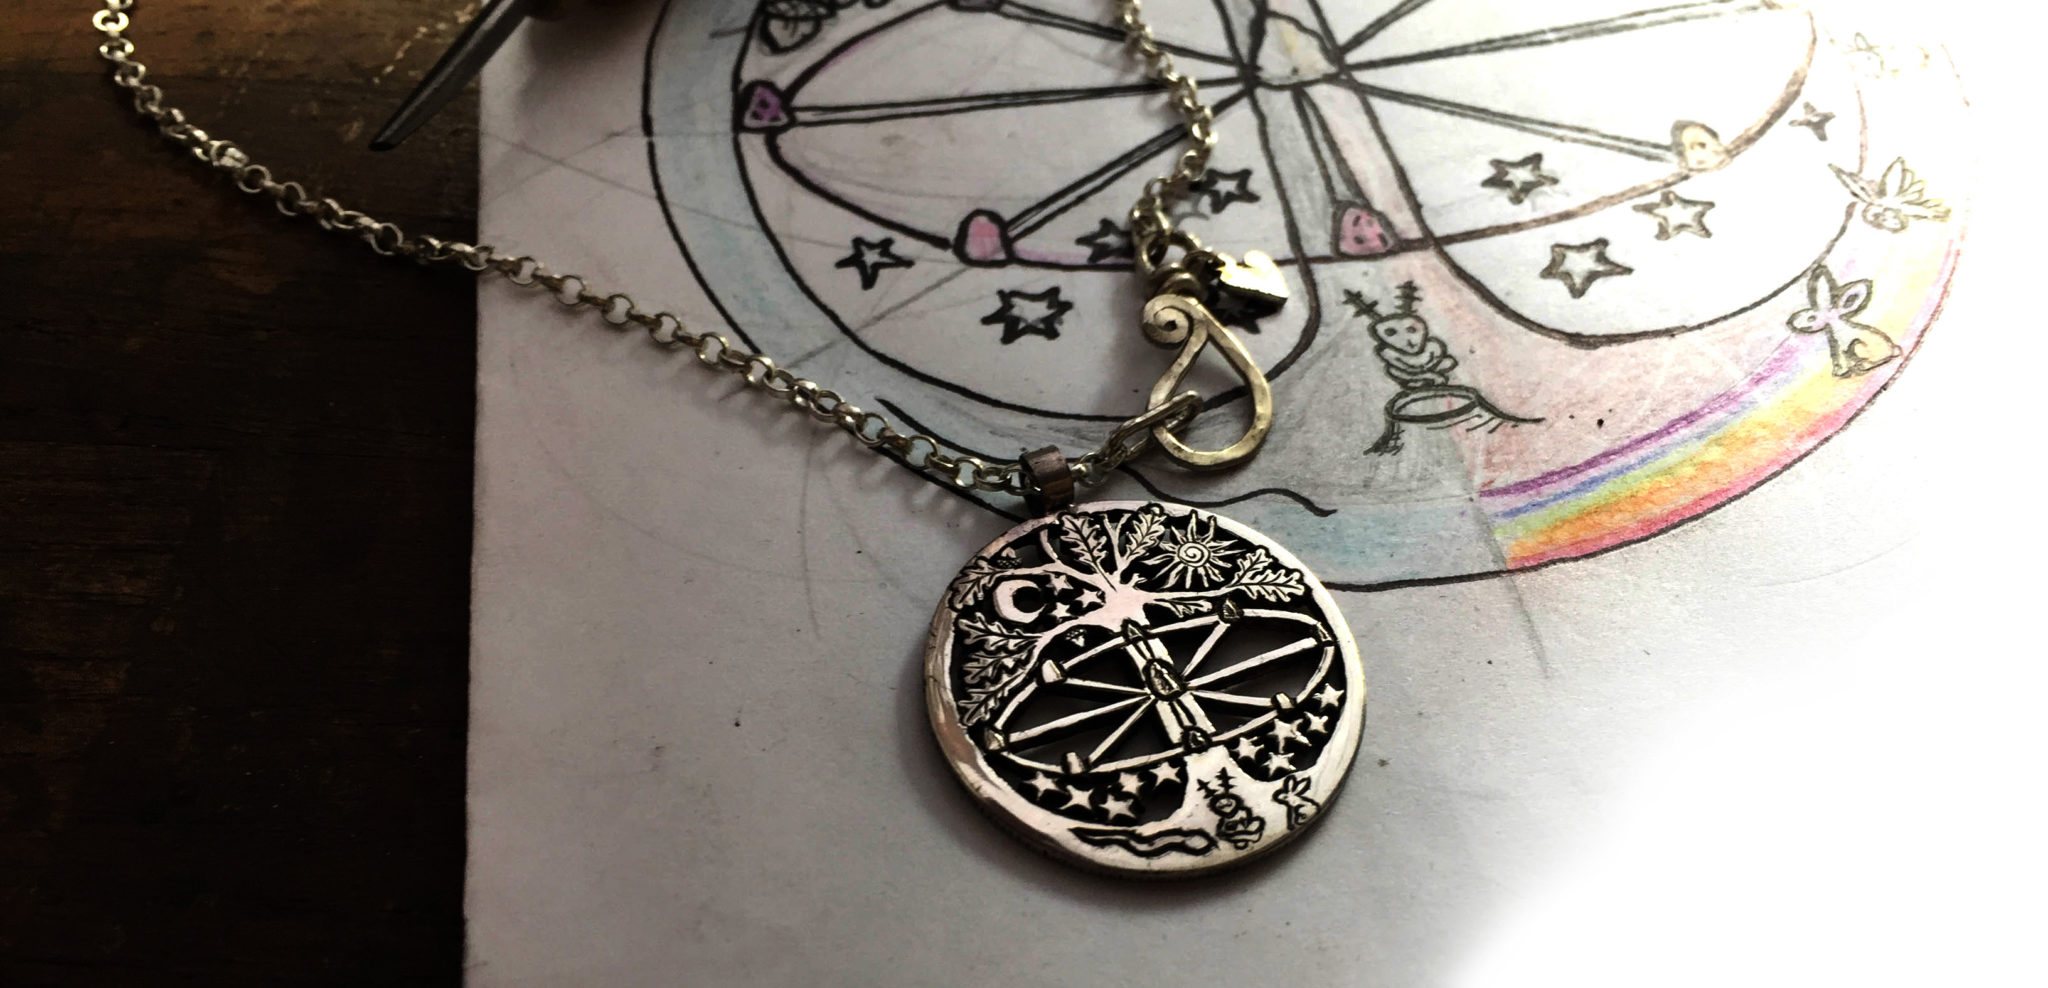 Wheel of the year collection of amulets, talisman and jewellery celebrating the wheel of time